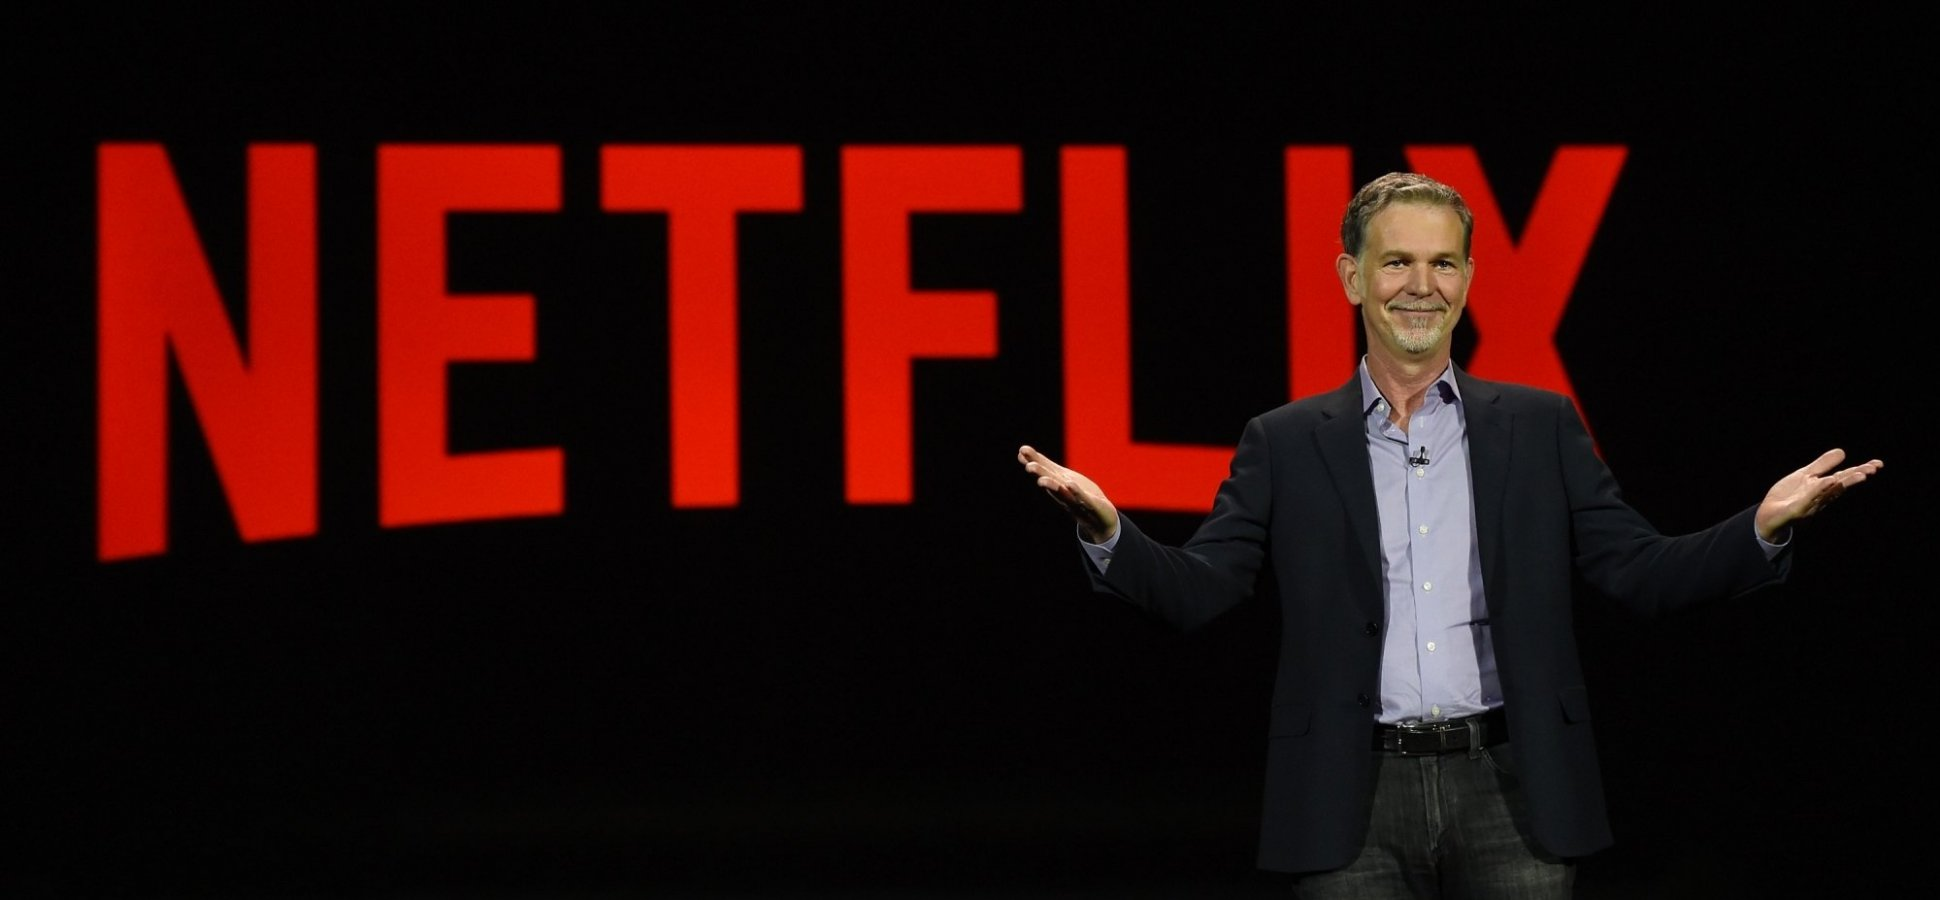 Netflix Just Got Sued for $150 Million, and the Lawsuit Is Totally Brilliant. (Or Maybe Insane, Hard to Tell)